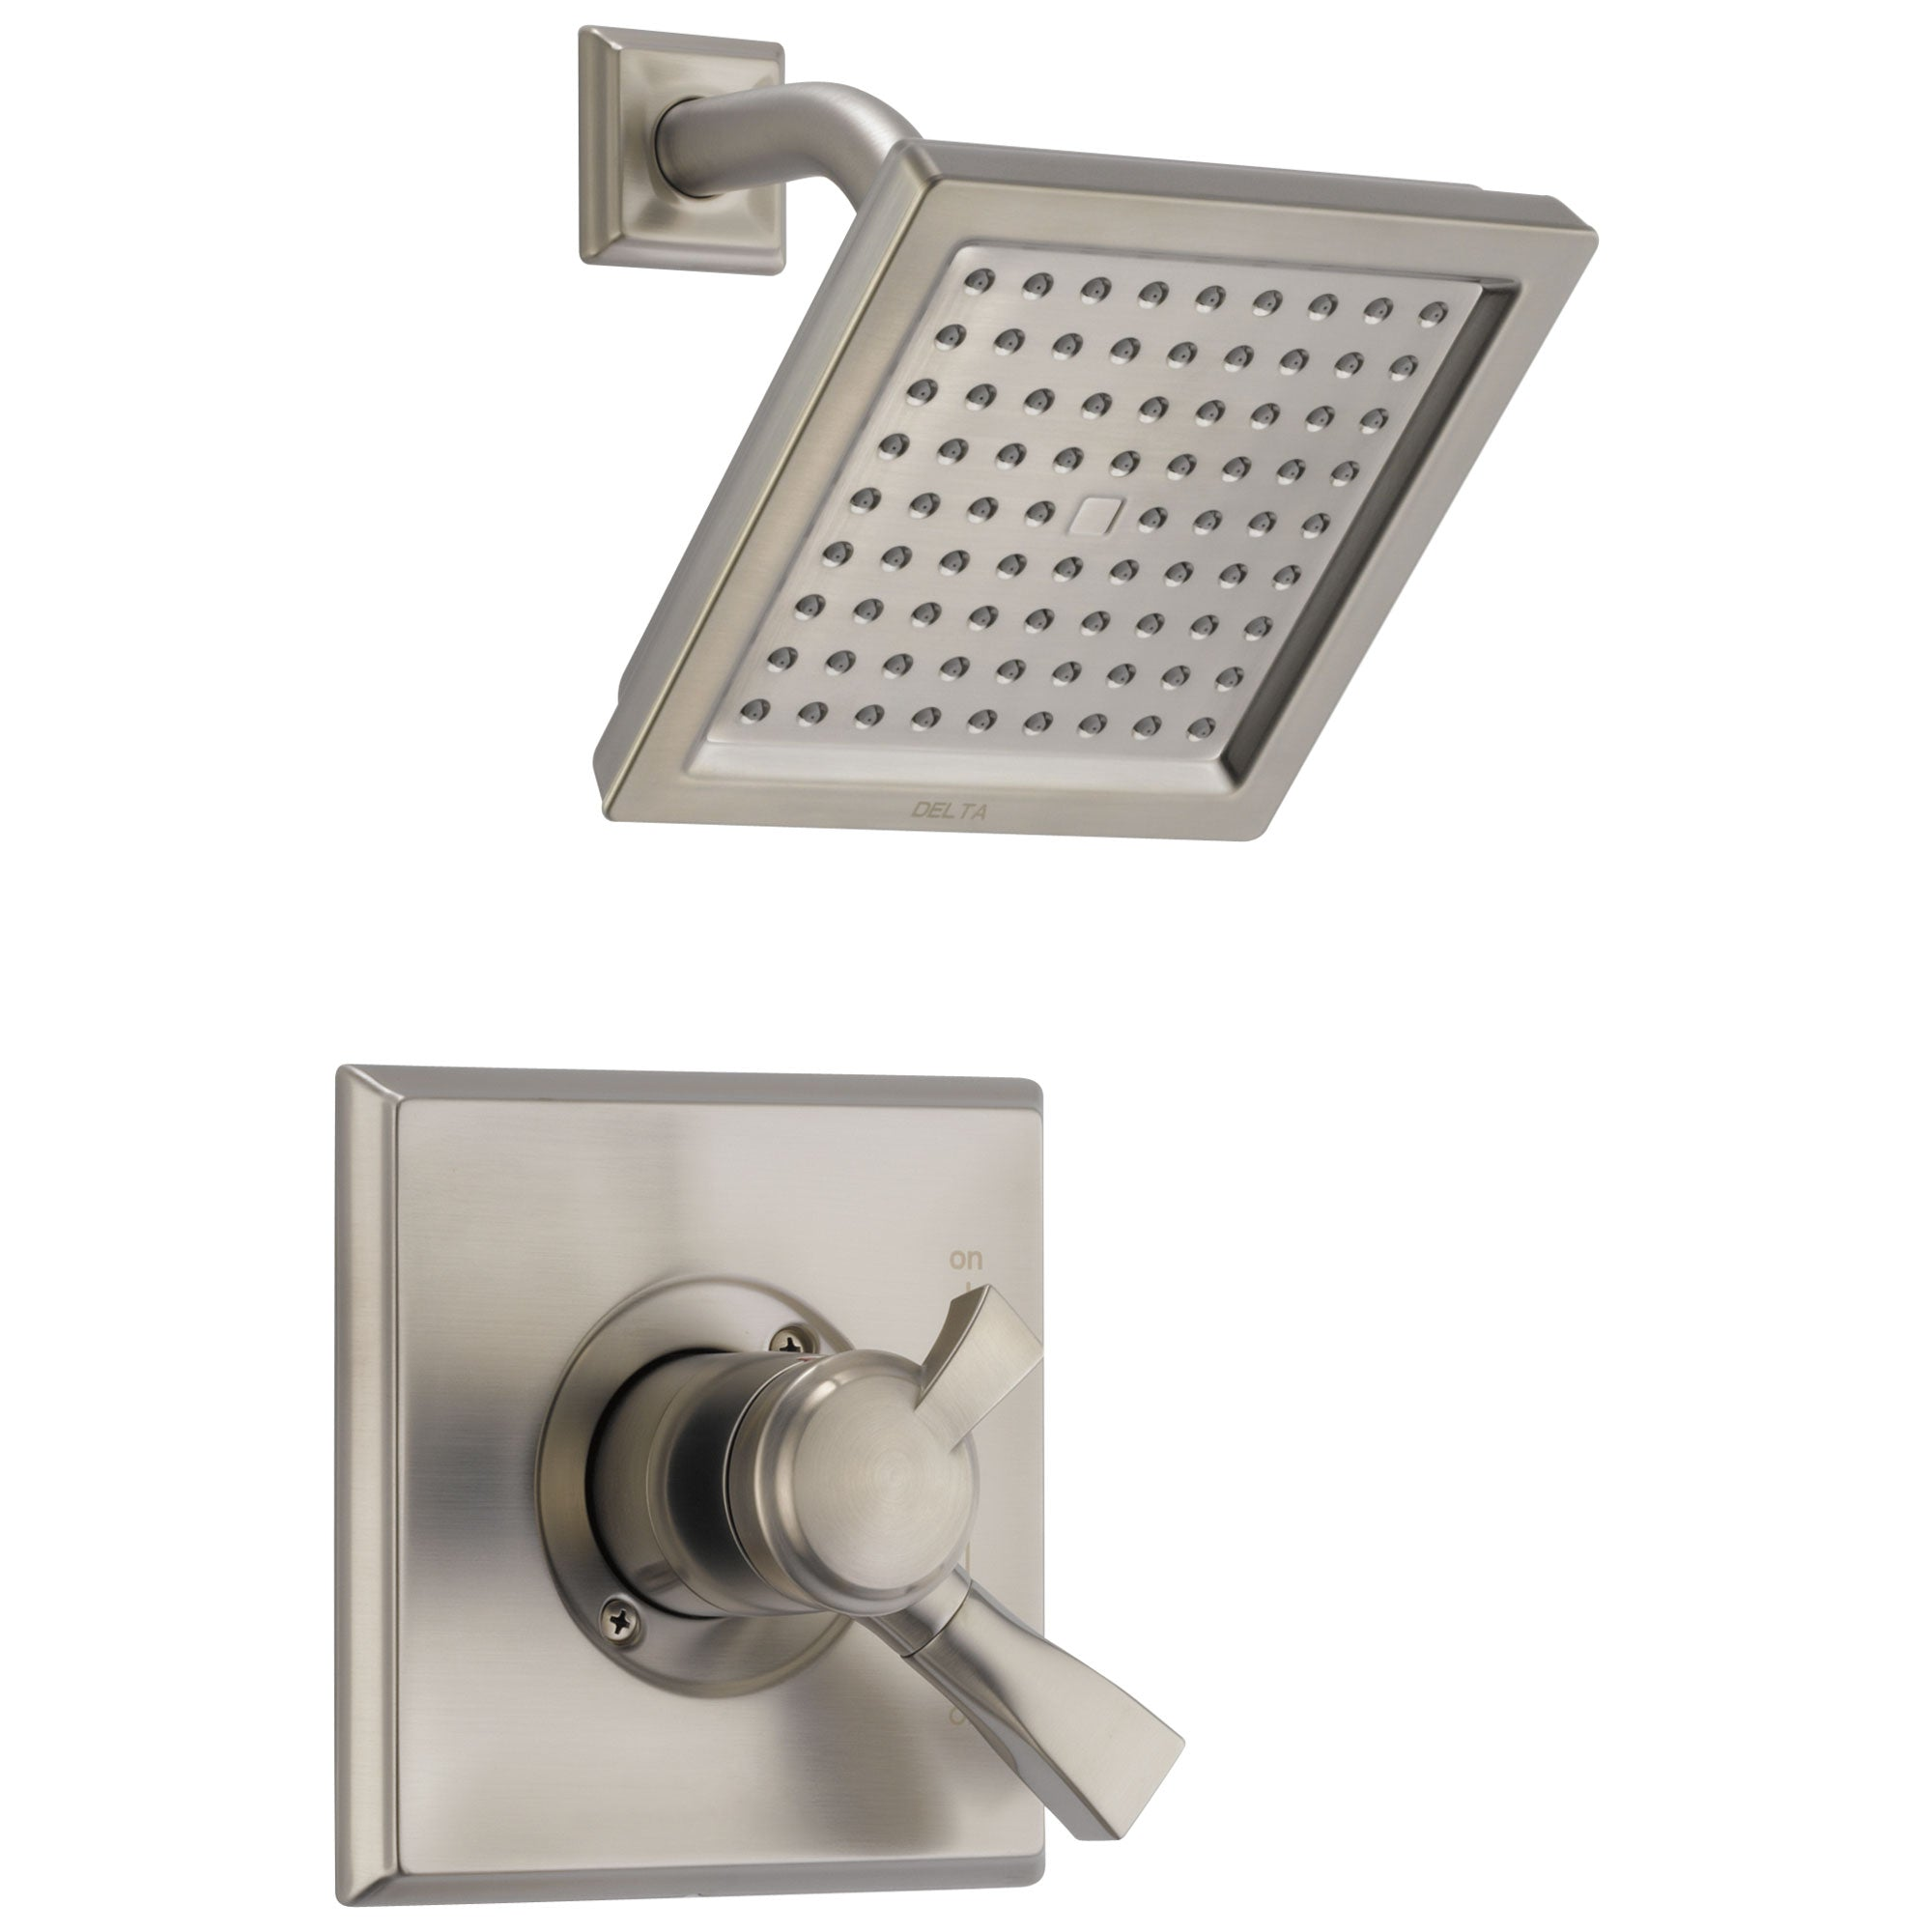 Delta Dryden Collection Stainless Steel Finish Monitor 17 Series Shower Faucet with Double Handle Control Trim Kit (Valve Sold Separately) DT17251SP